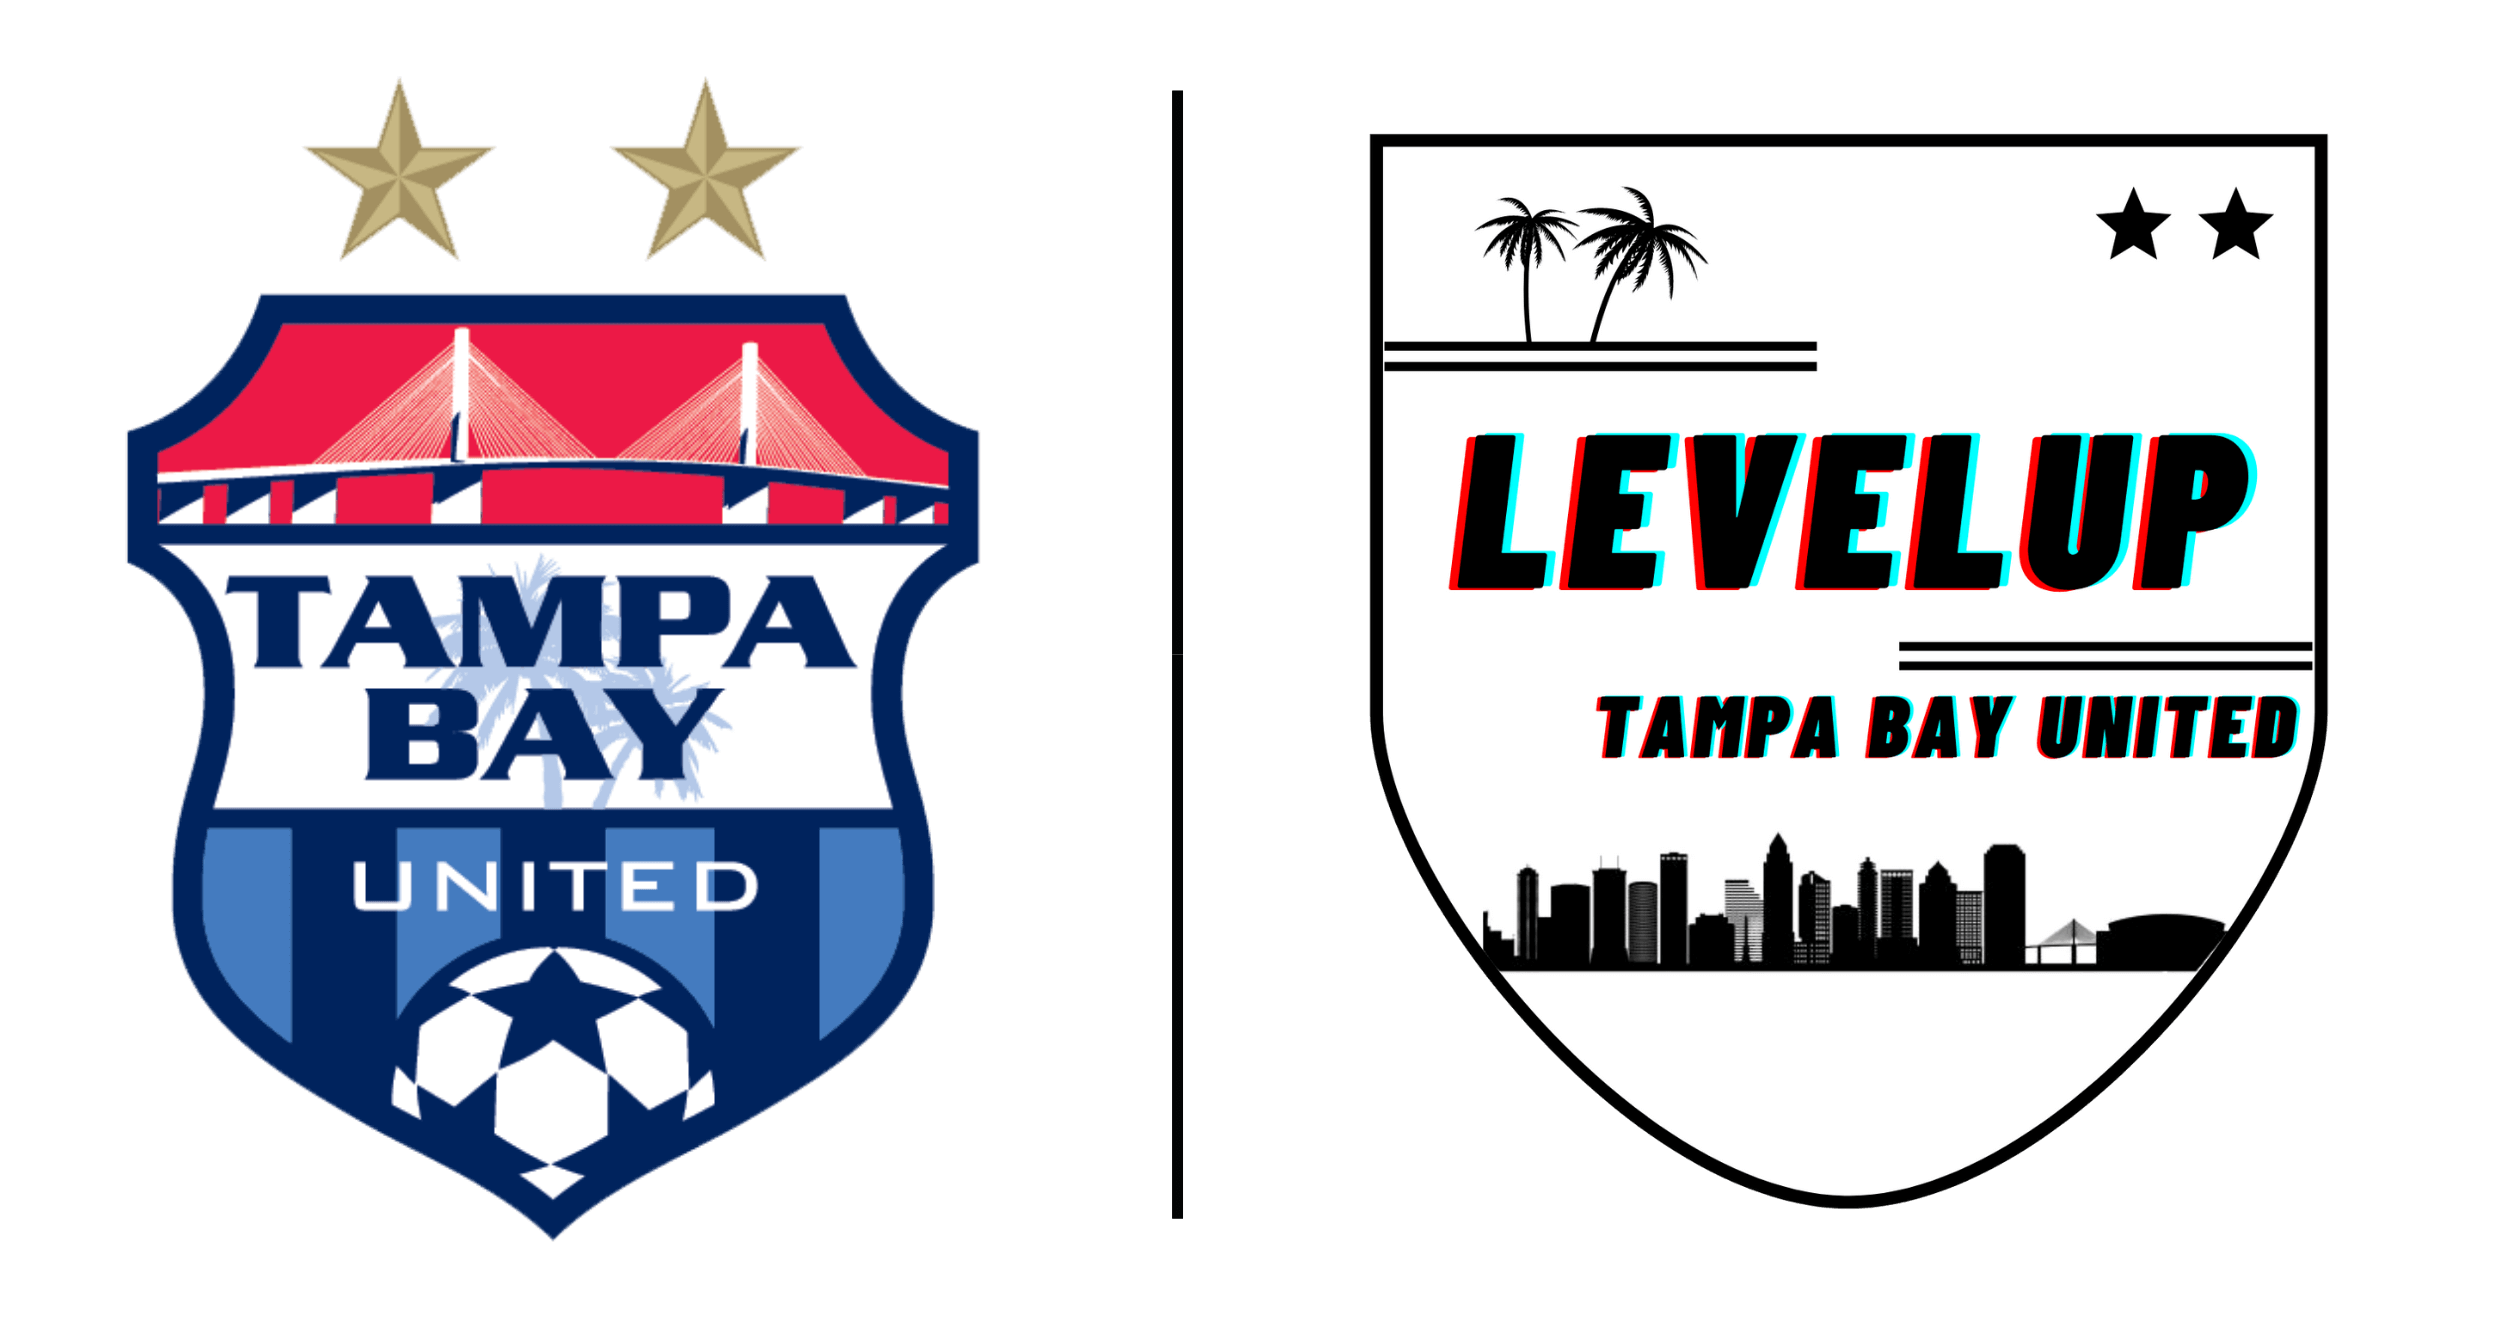 Tampa Bay - Level Up